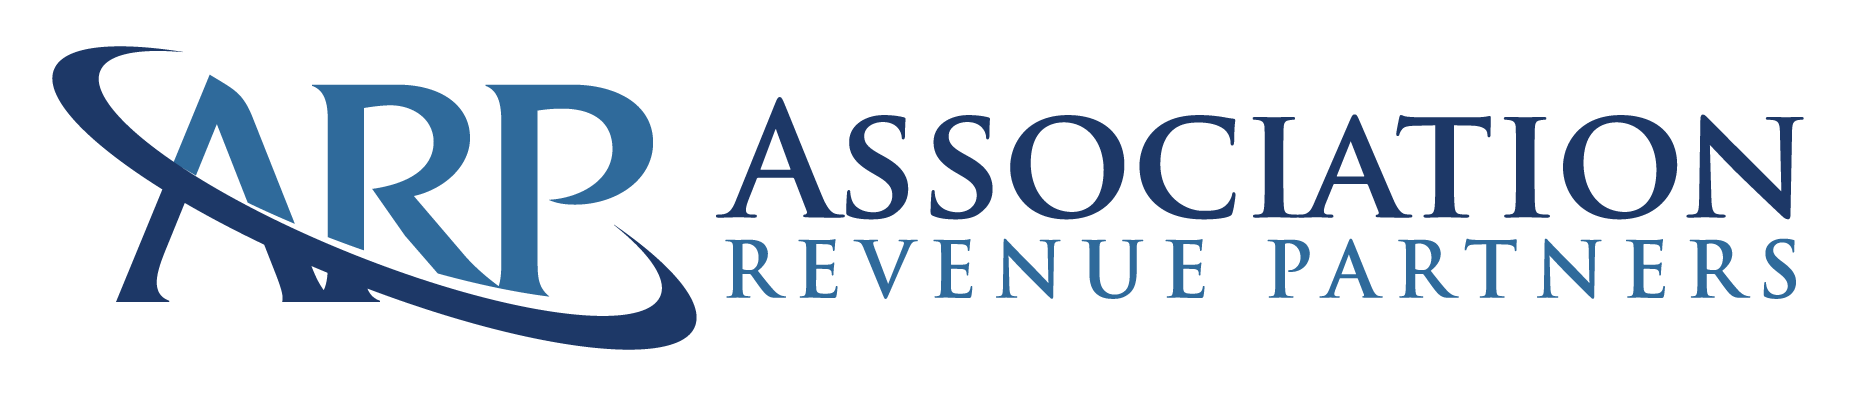 Associationrevenuepartners